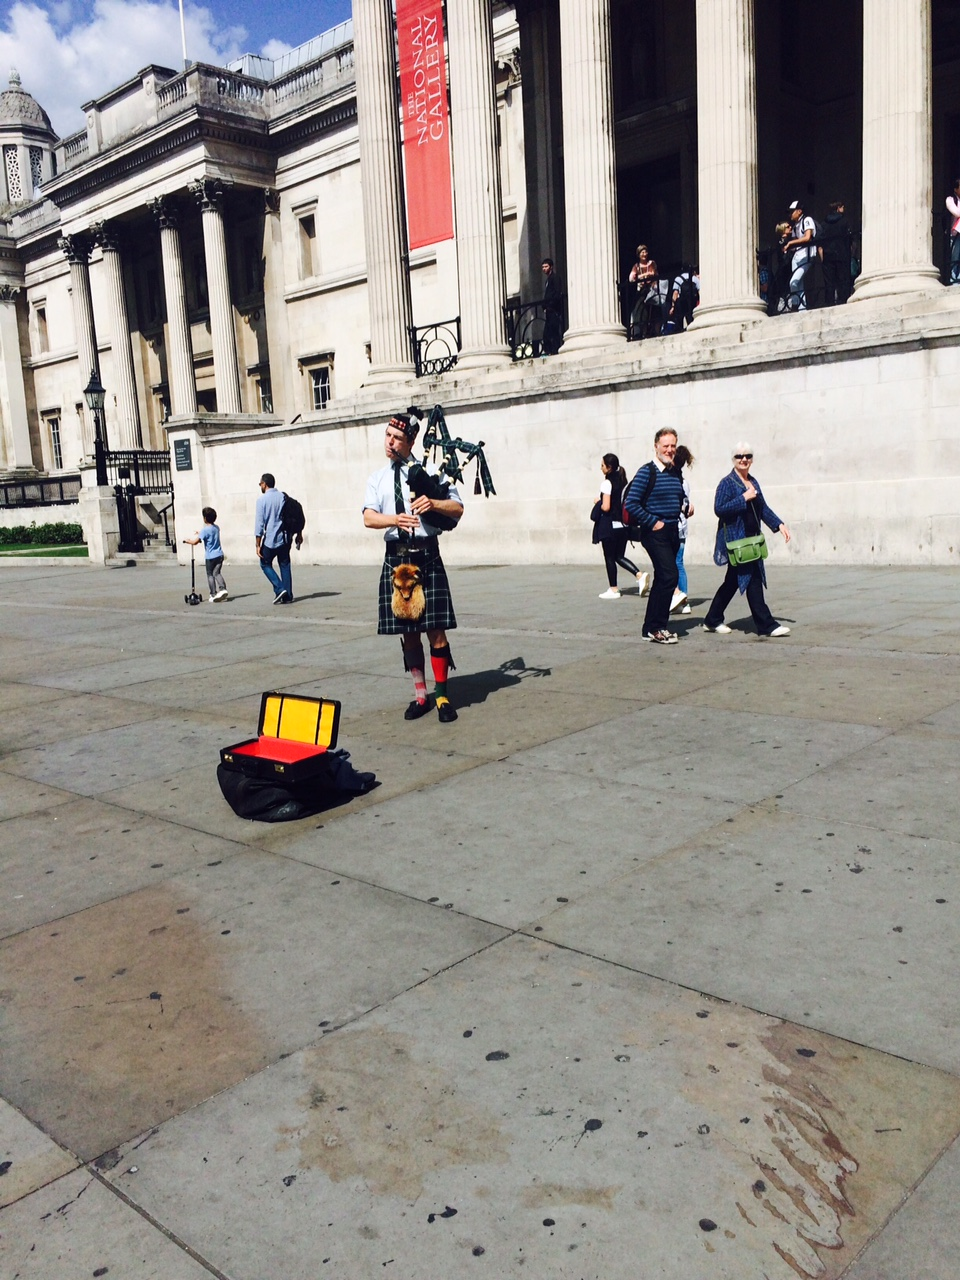 Bag pipes outside The National Gallery.  This guy was amazing.